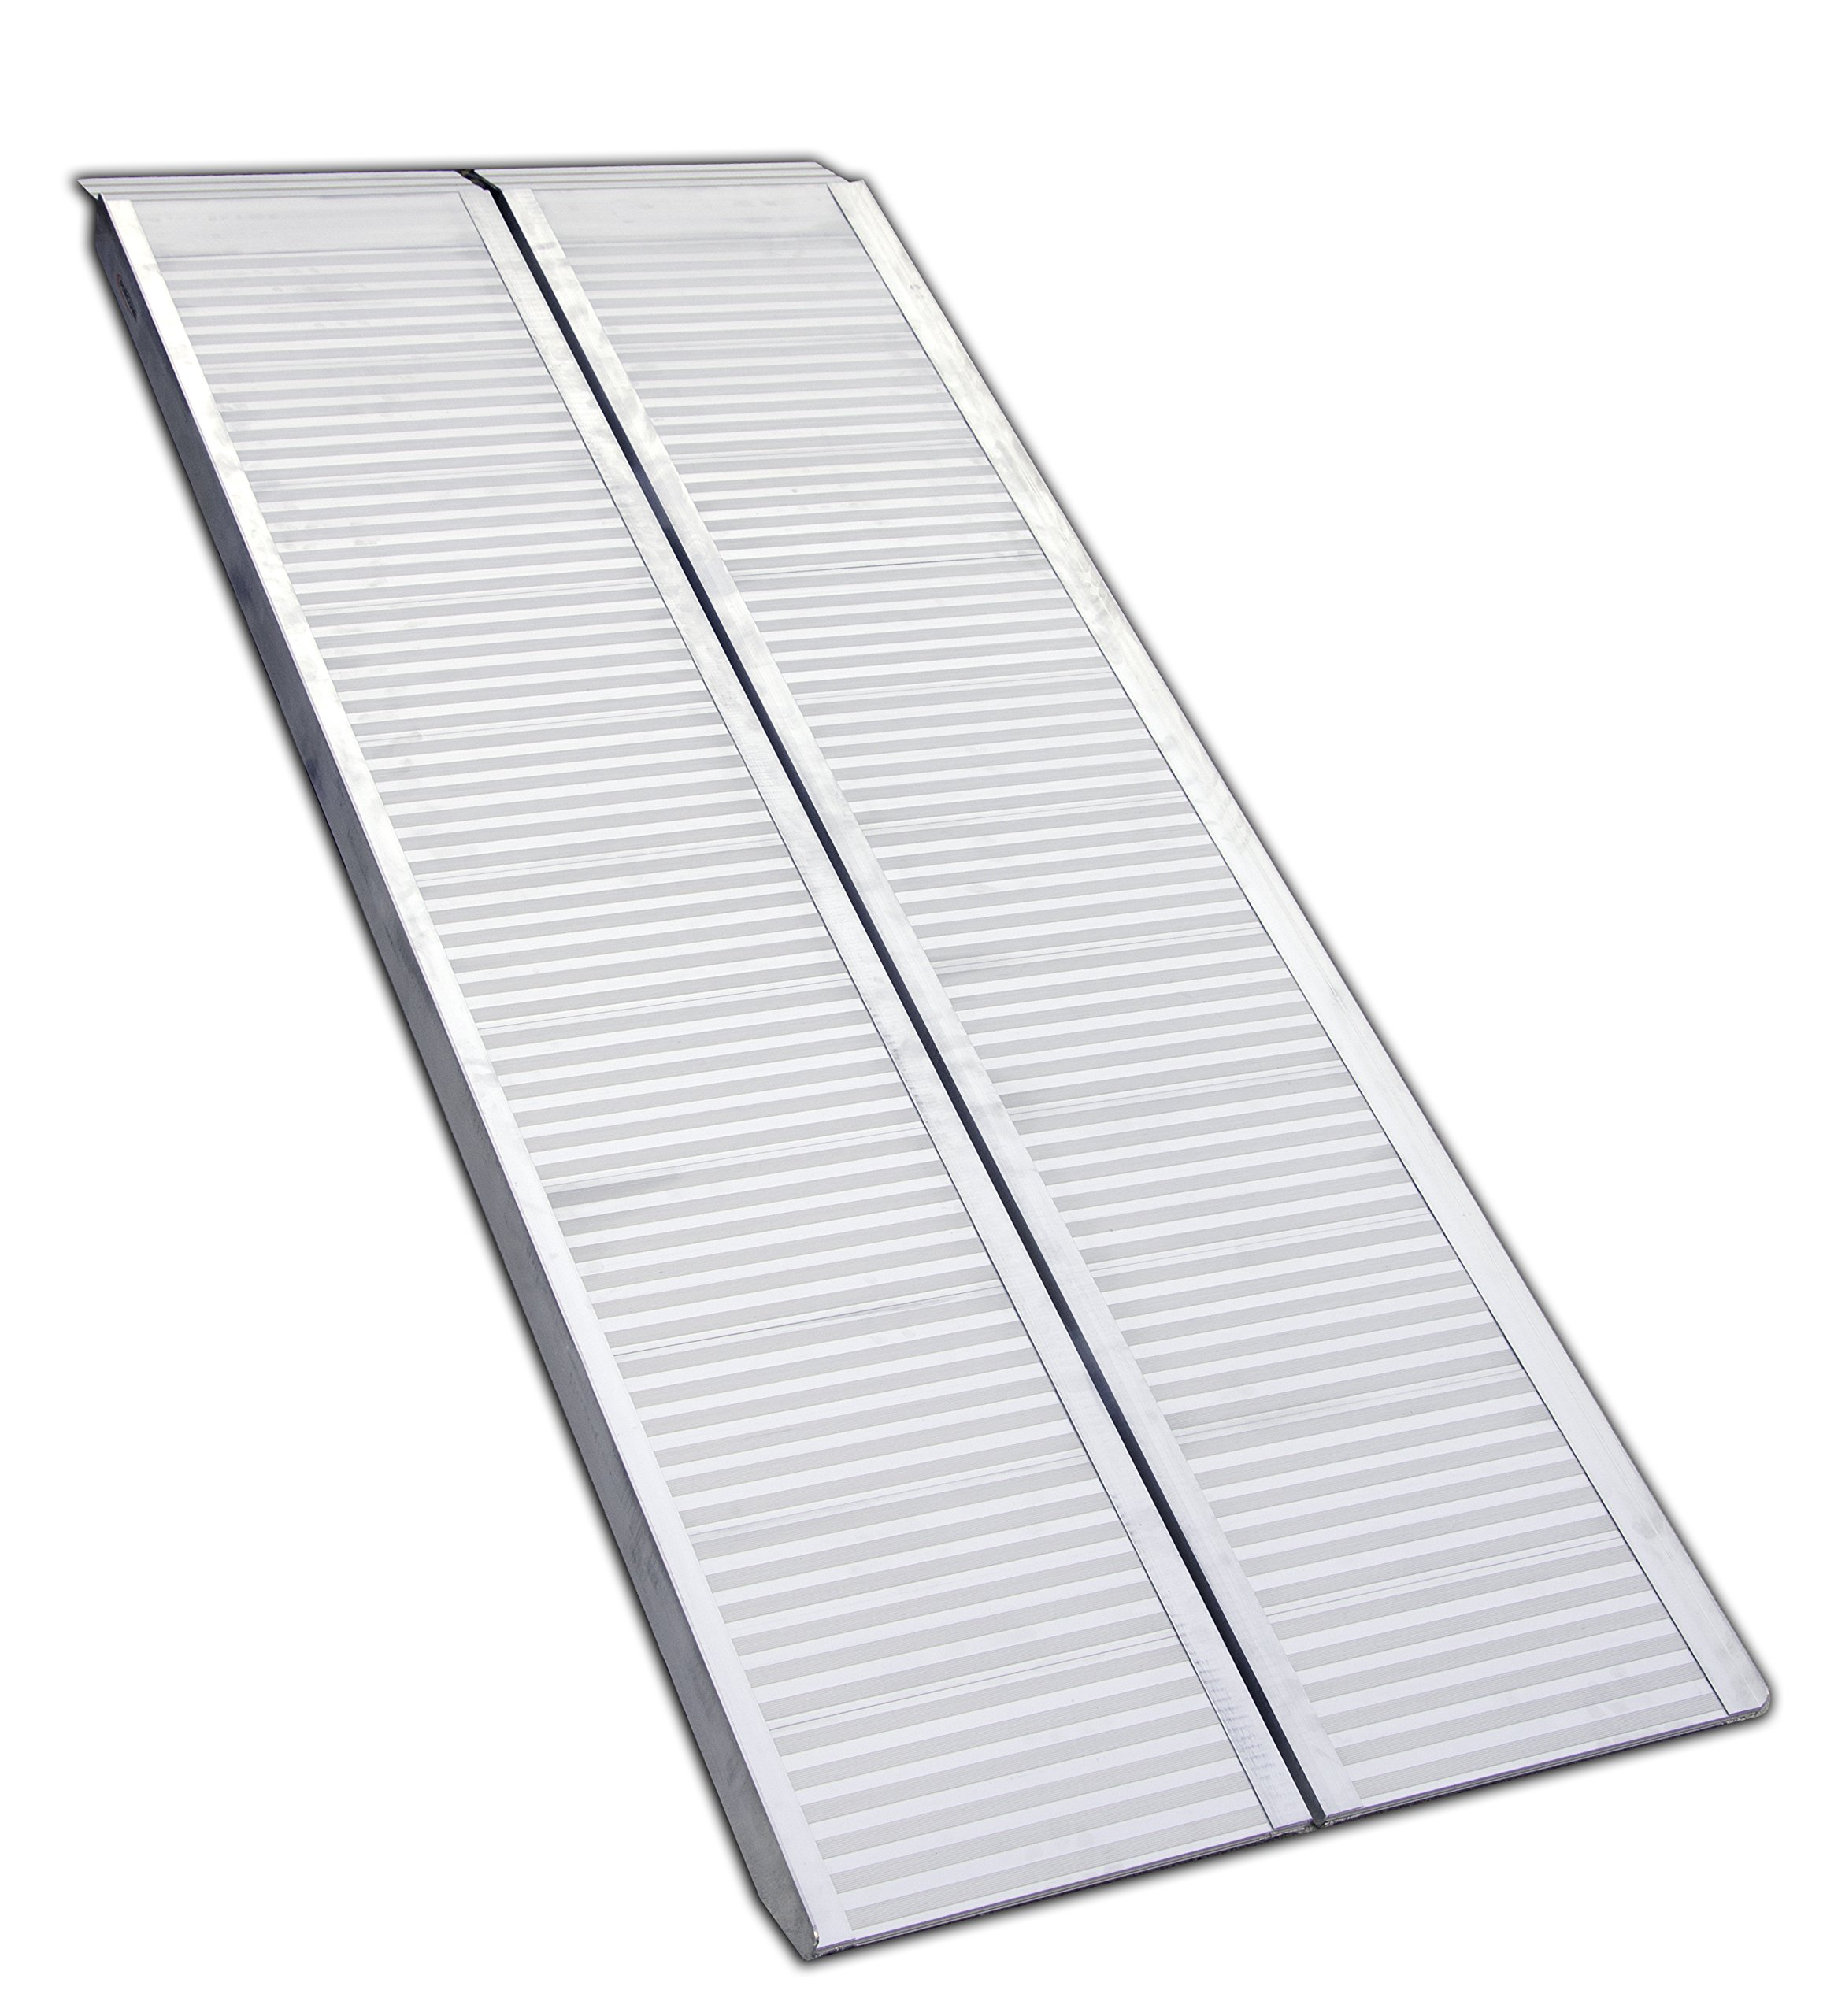 Erickson 07459 Center Folding Aluminum Ramp (1200 lb rated, 72″ x 30″) , 1 Pack by Erickson